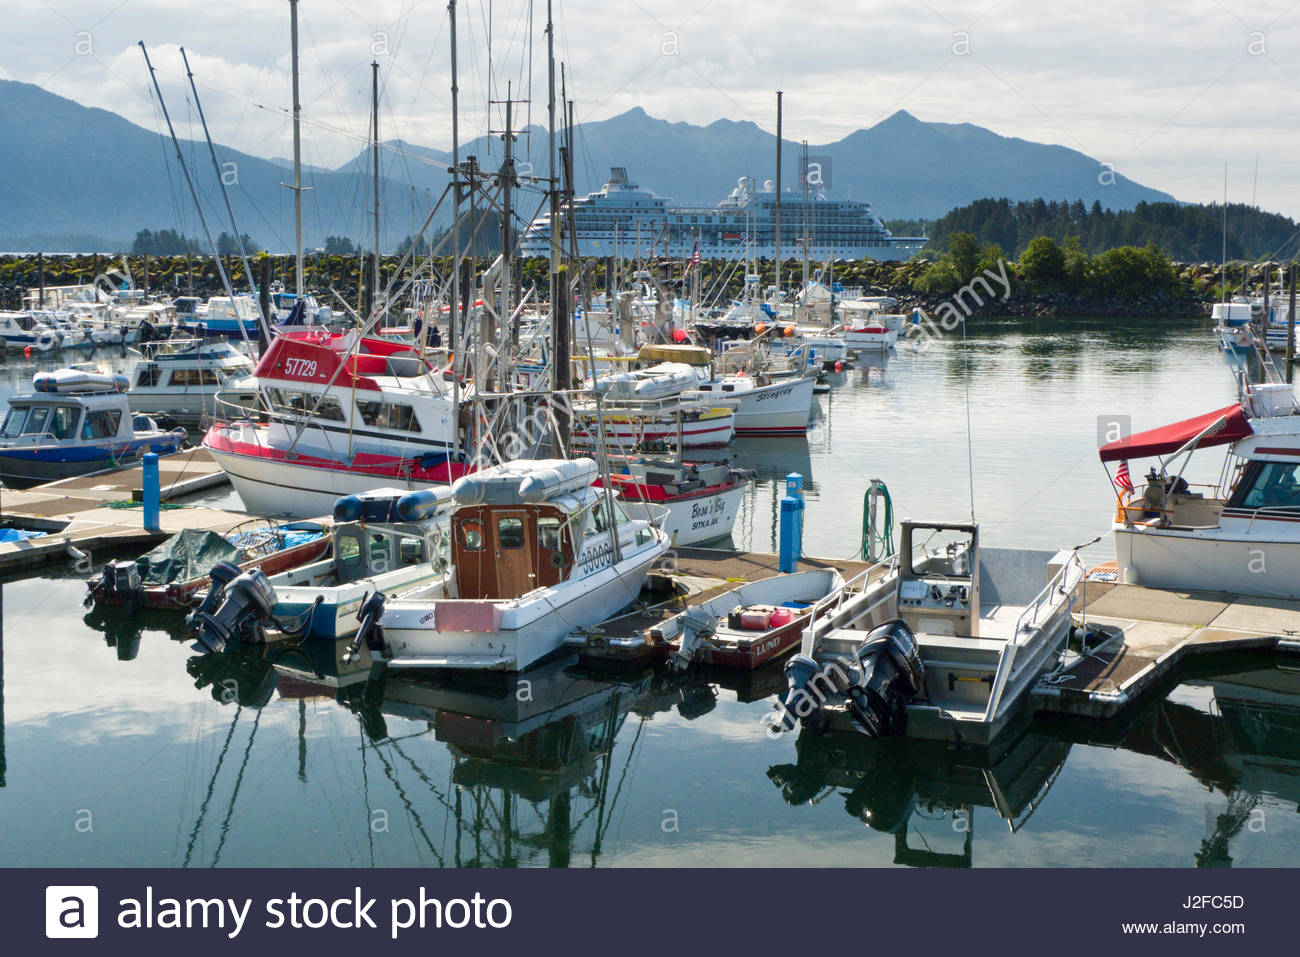 Small boats and yachts in berths on floating dock, Crescent Harbor, Sitka, Alaska, USA - Stock Image